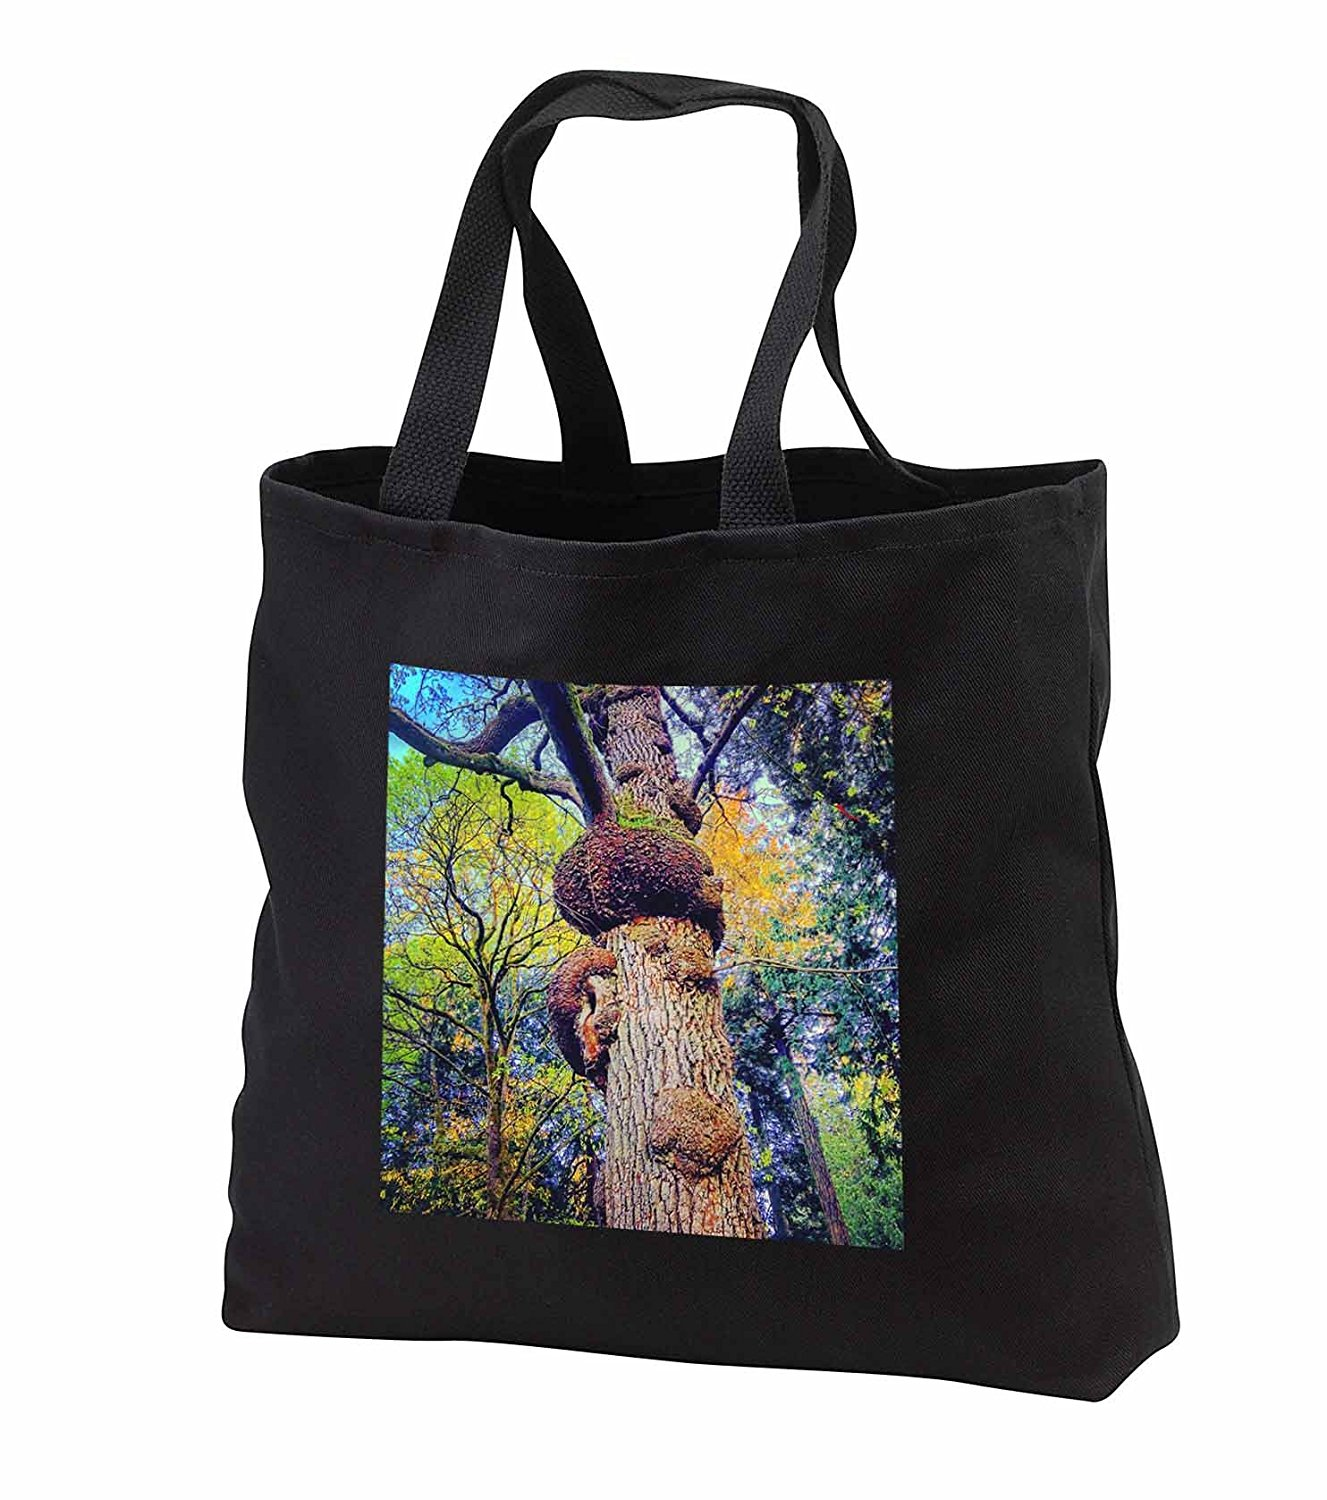 tb_245696 DYLAN SEIBOLD - PHOTOGRAPHY - BULBOUS TREE TRUNK - Tote Bags